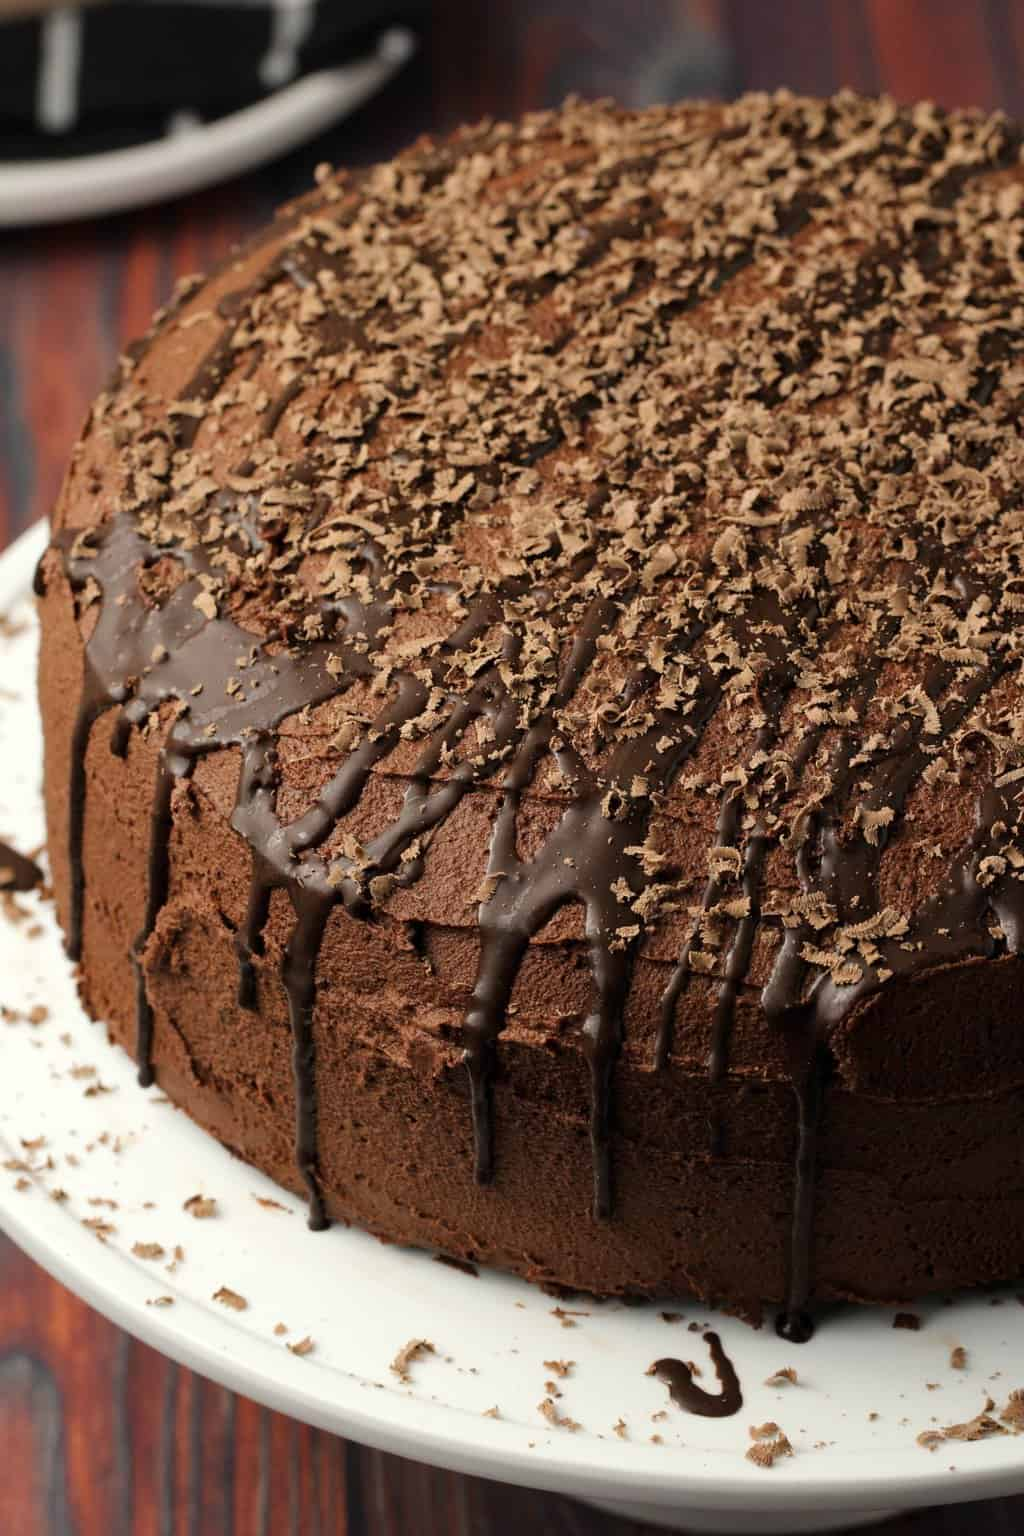 Vegan chocolate fudge cake with chocolate fudge frosting on a white cake stand.